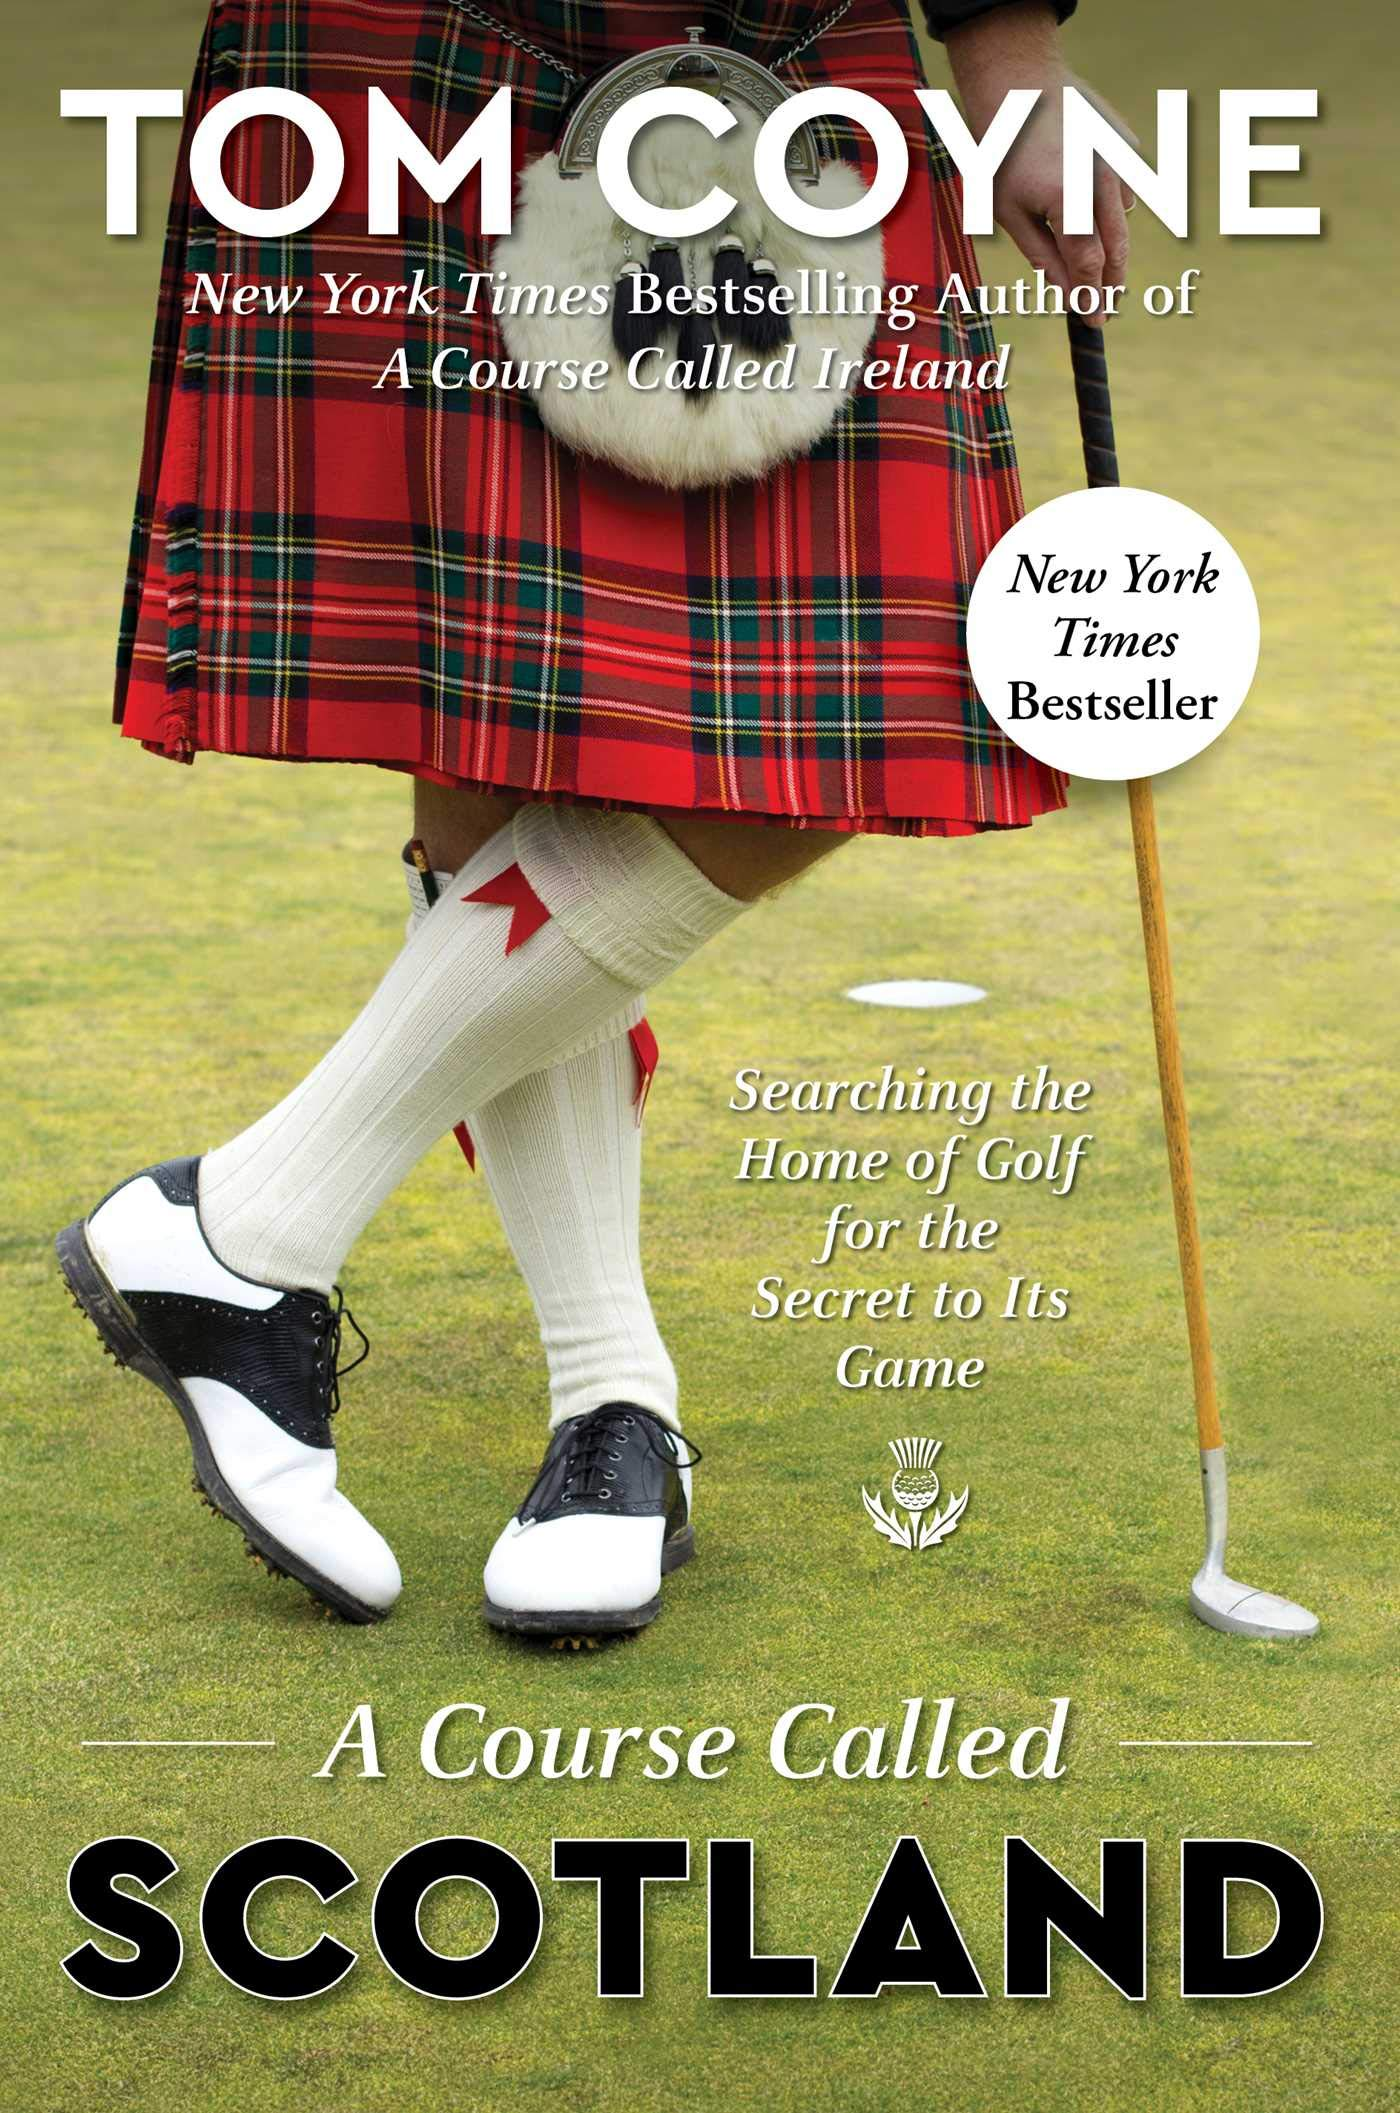 Coyne, A COURSE CALLED SCOTLAND, US cover.jpg